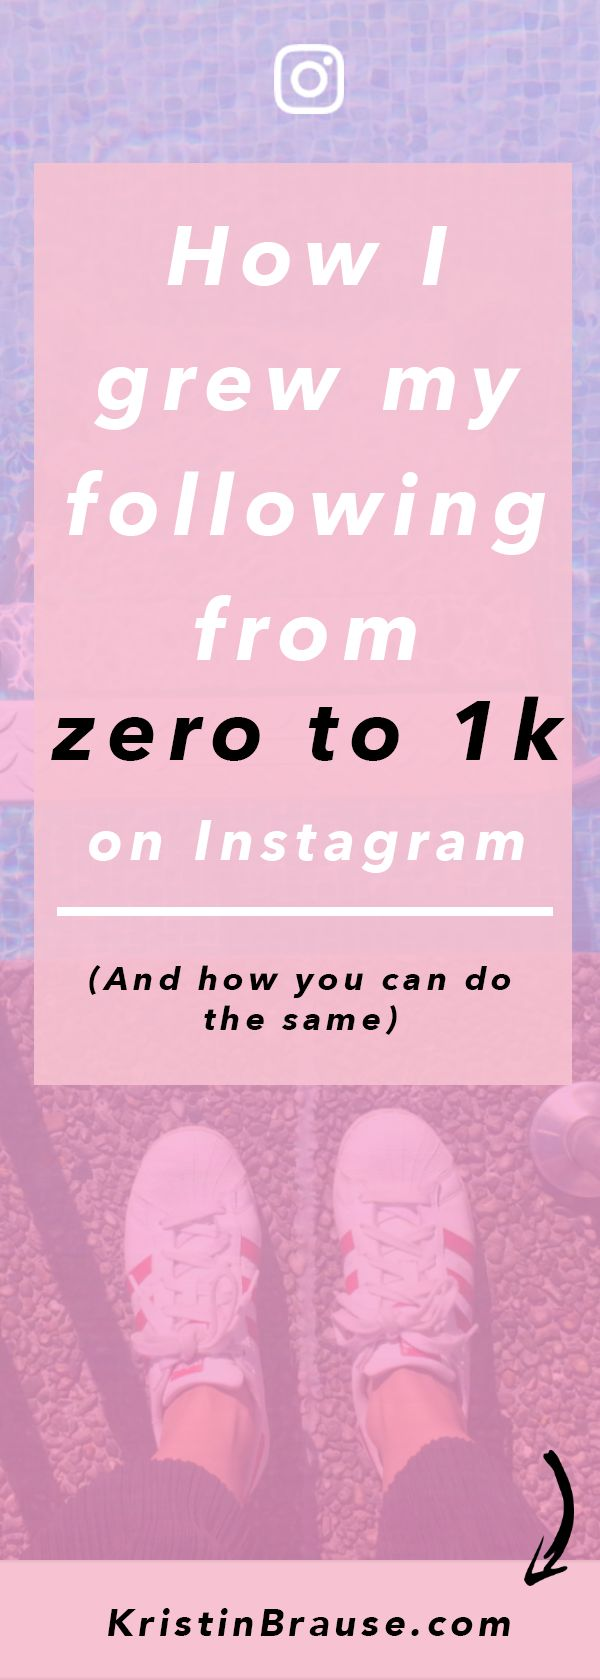 Want to know how to gain more Instagram followers? In this blog post I share my strategies I used to grow my following from zero to 1k.